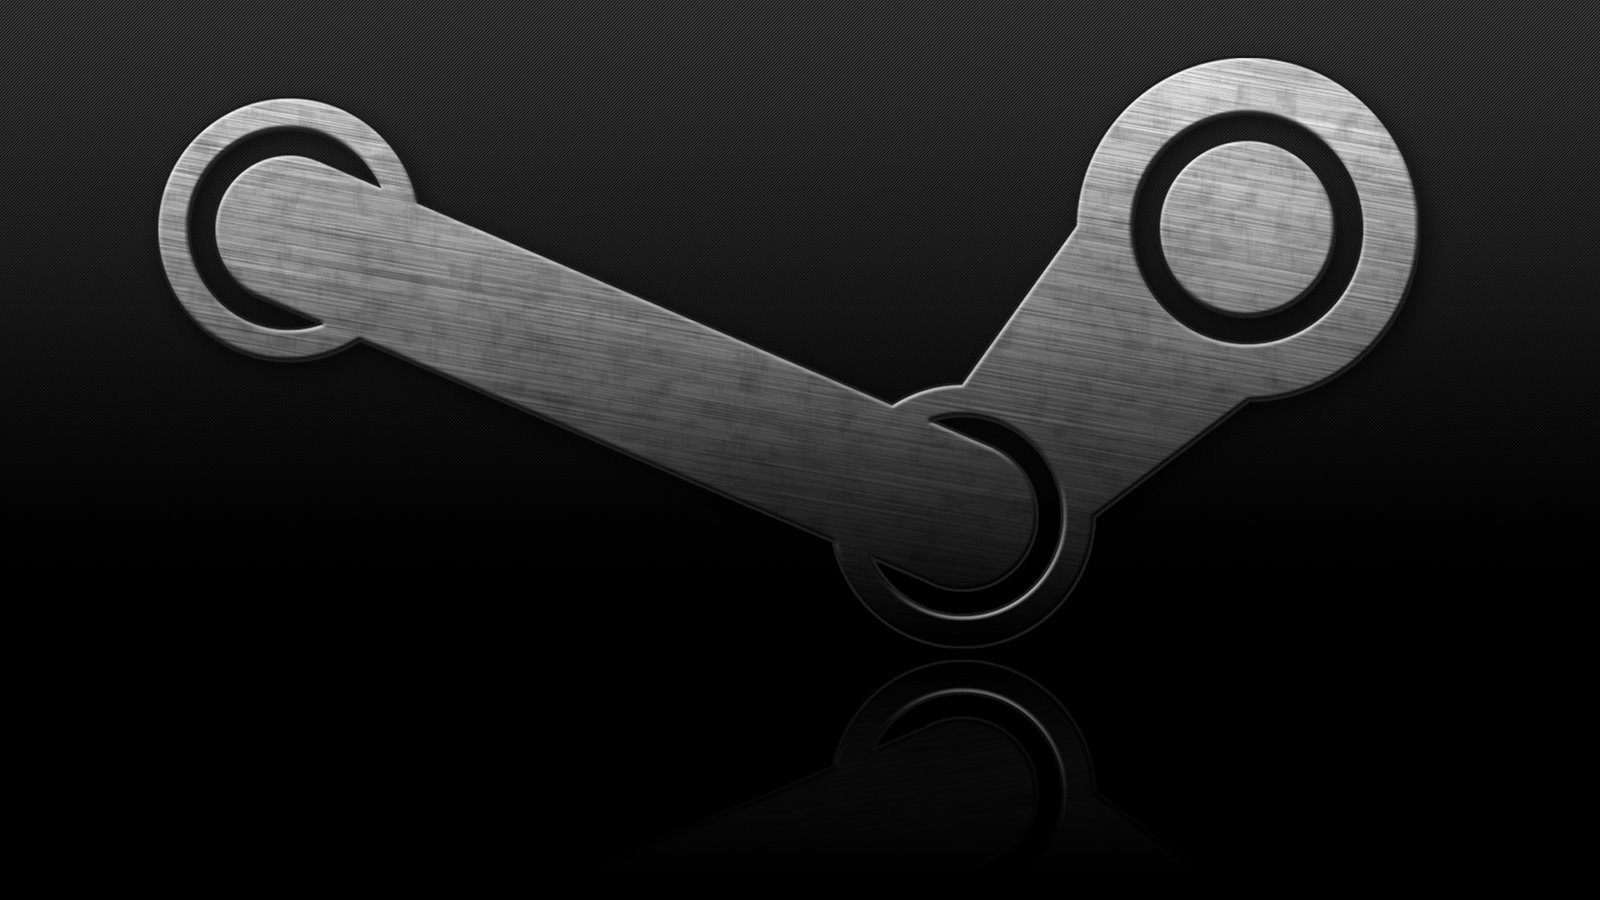 steam is currently experiencing serious security issues